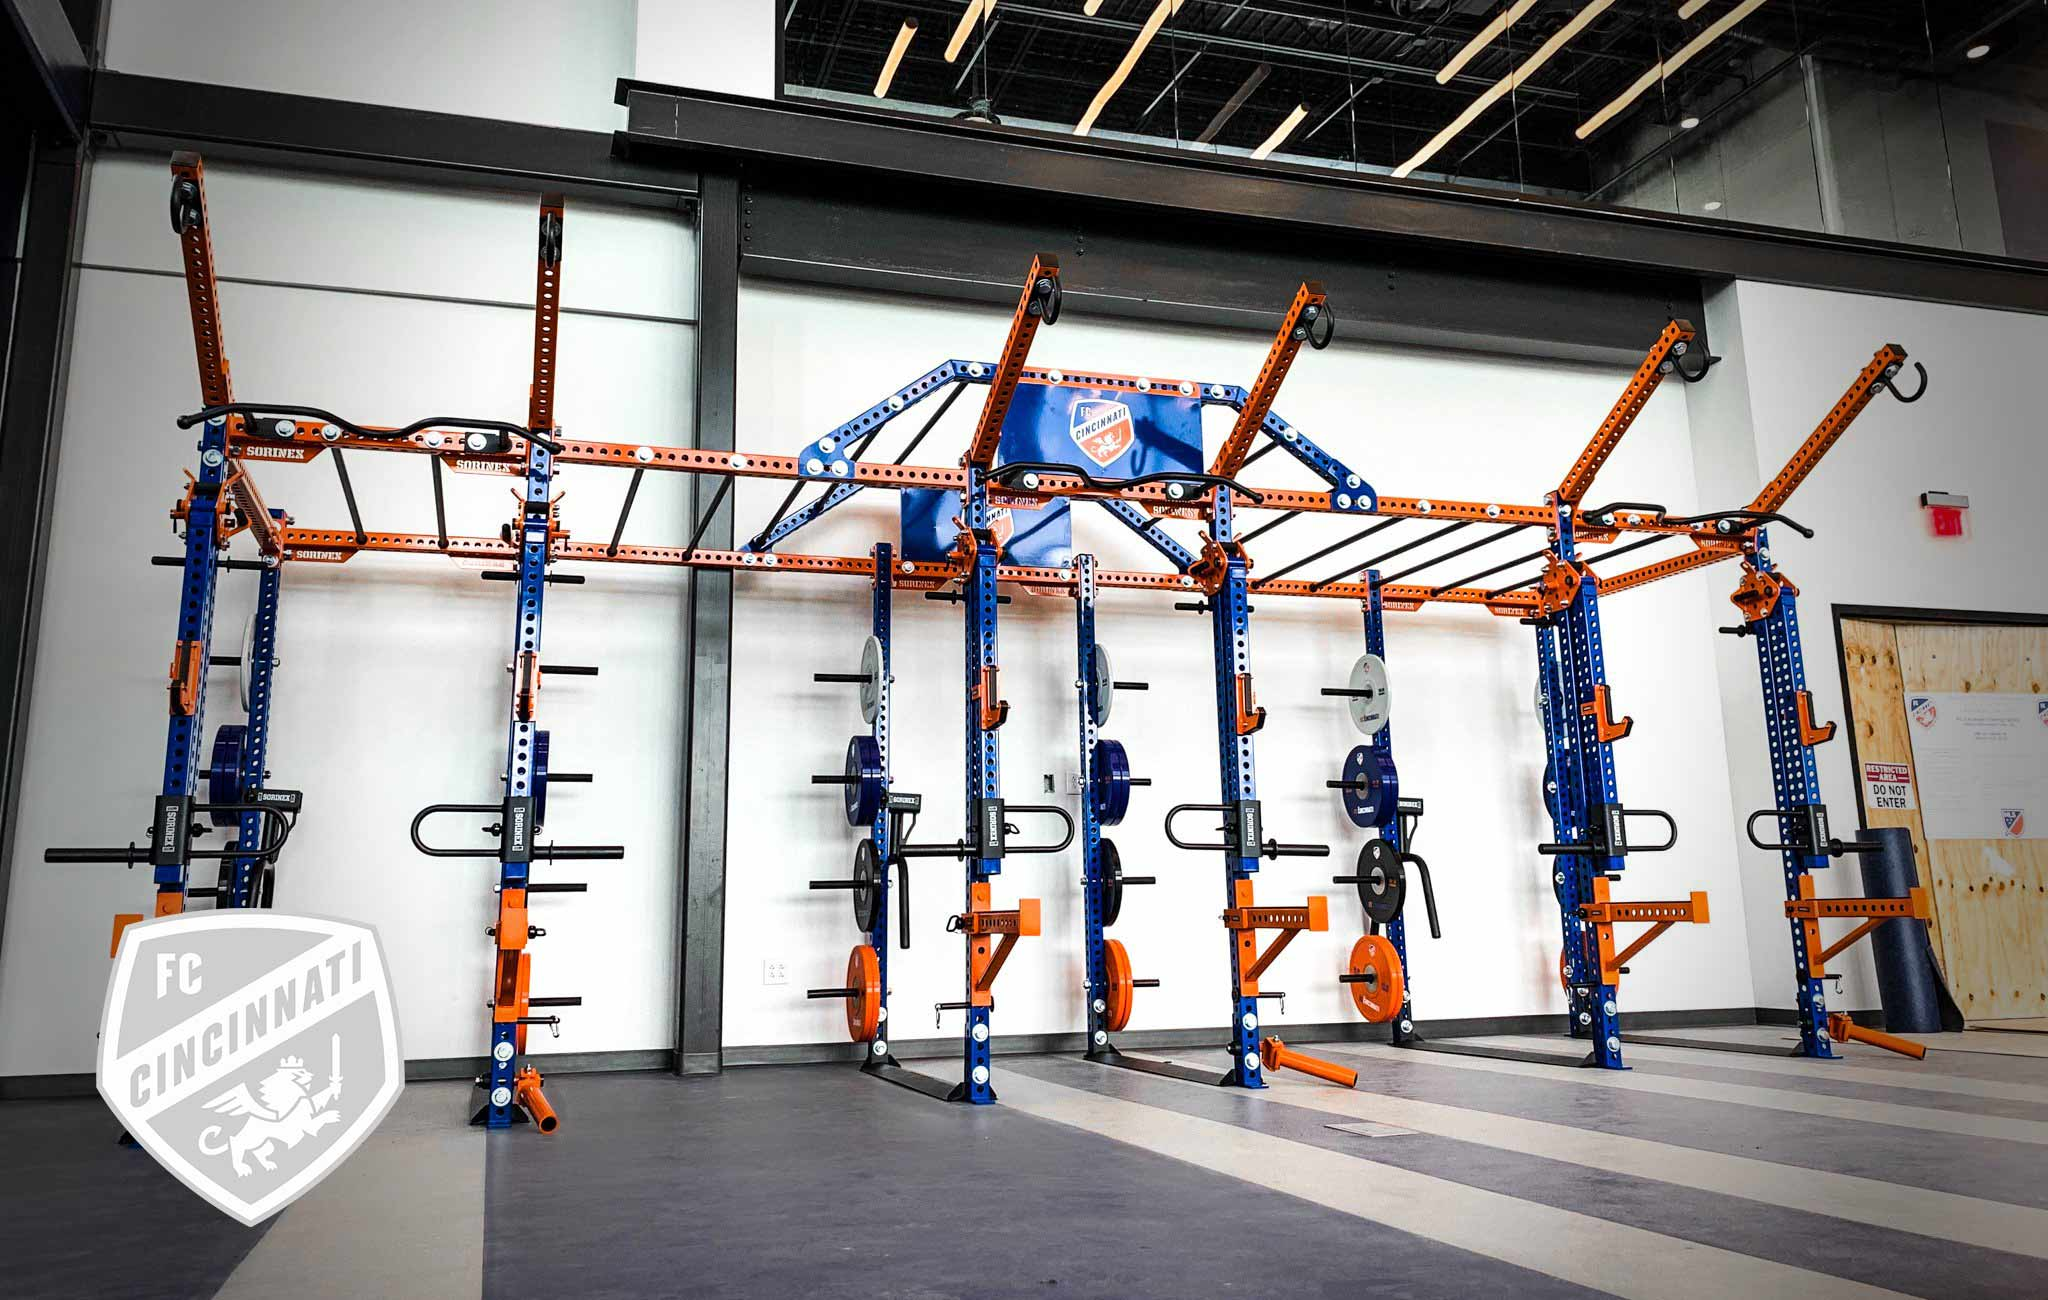 FC Cincinnati Sorinex strength and conditioning facility